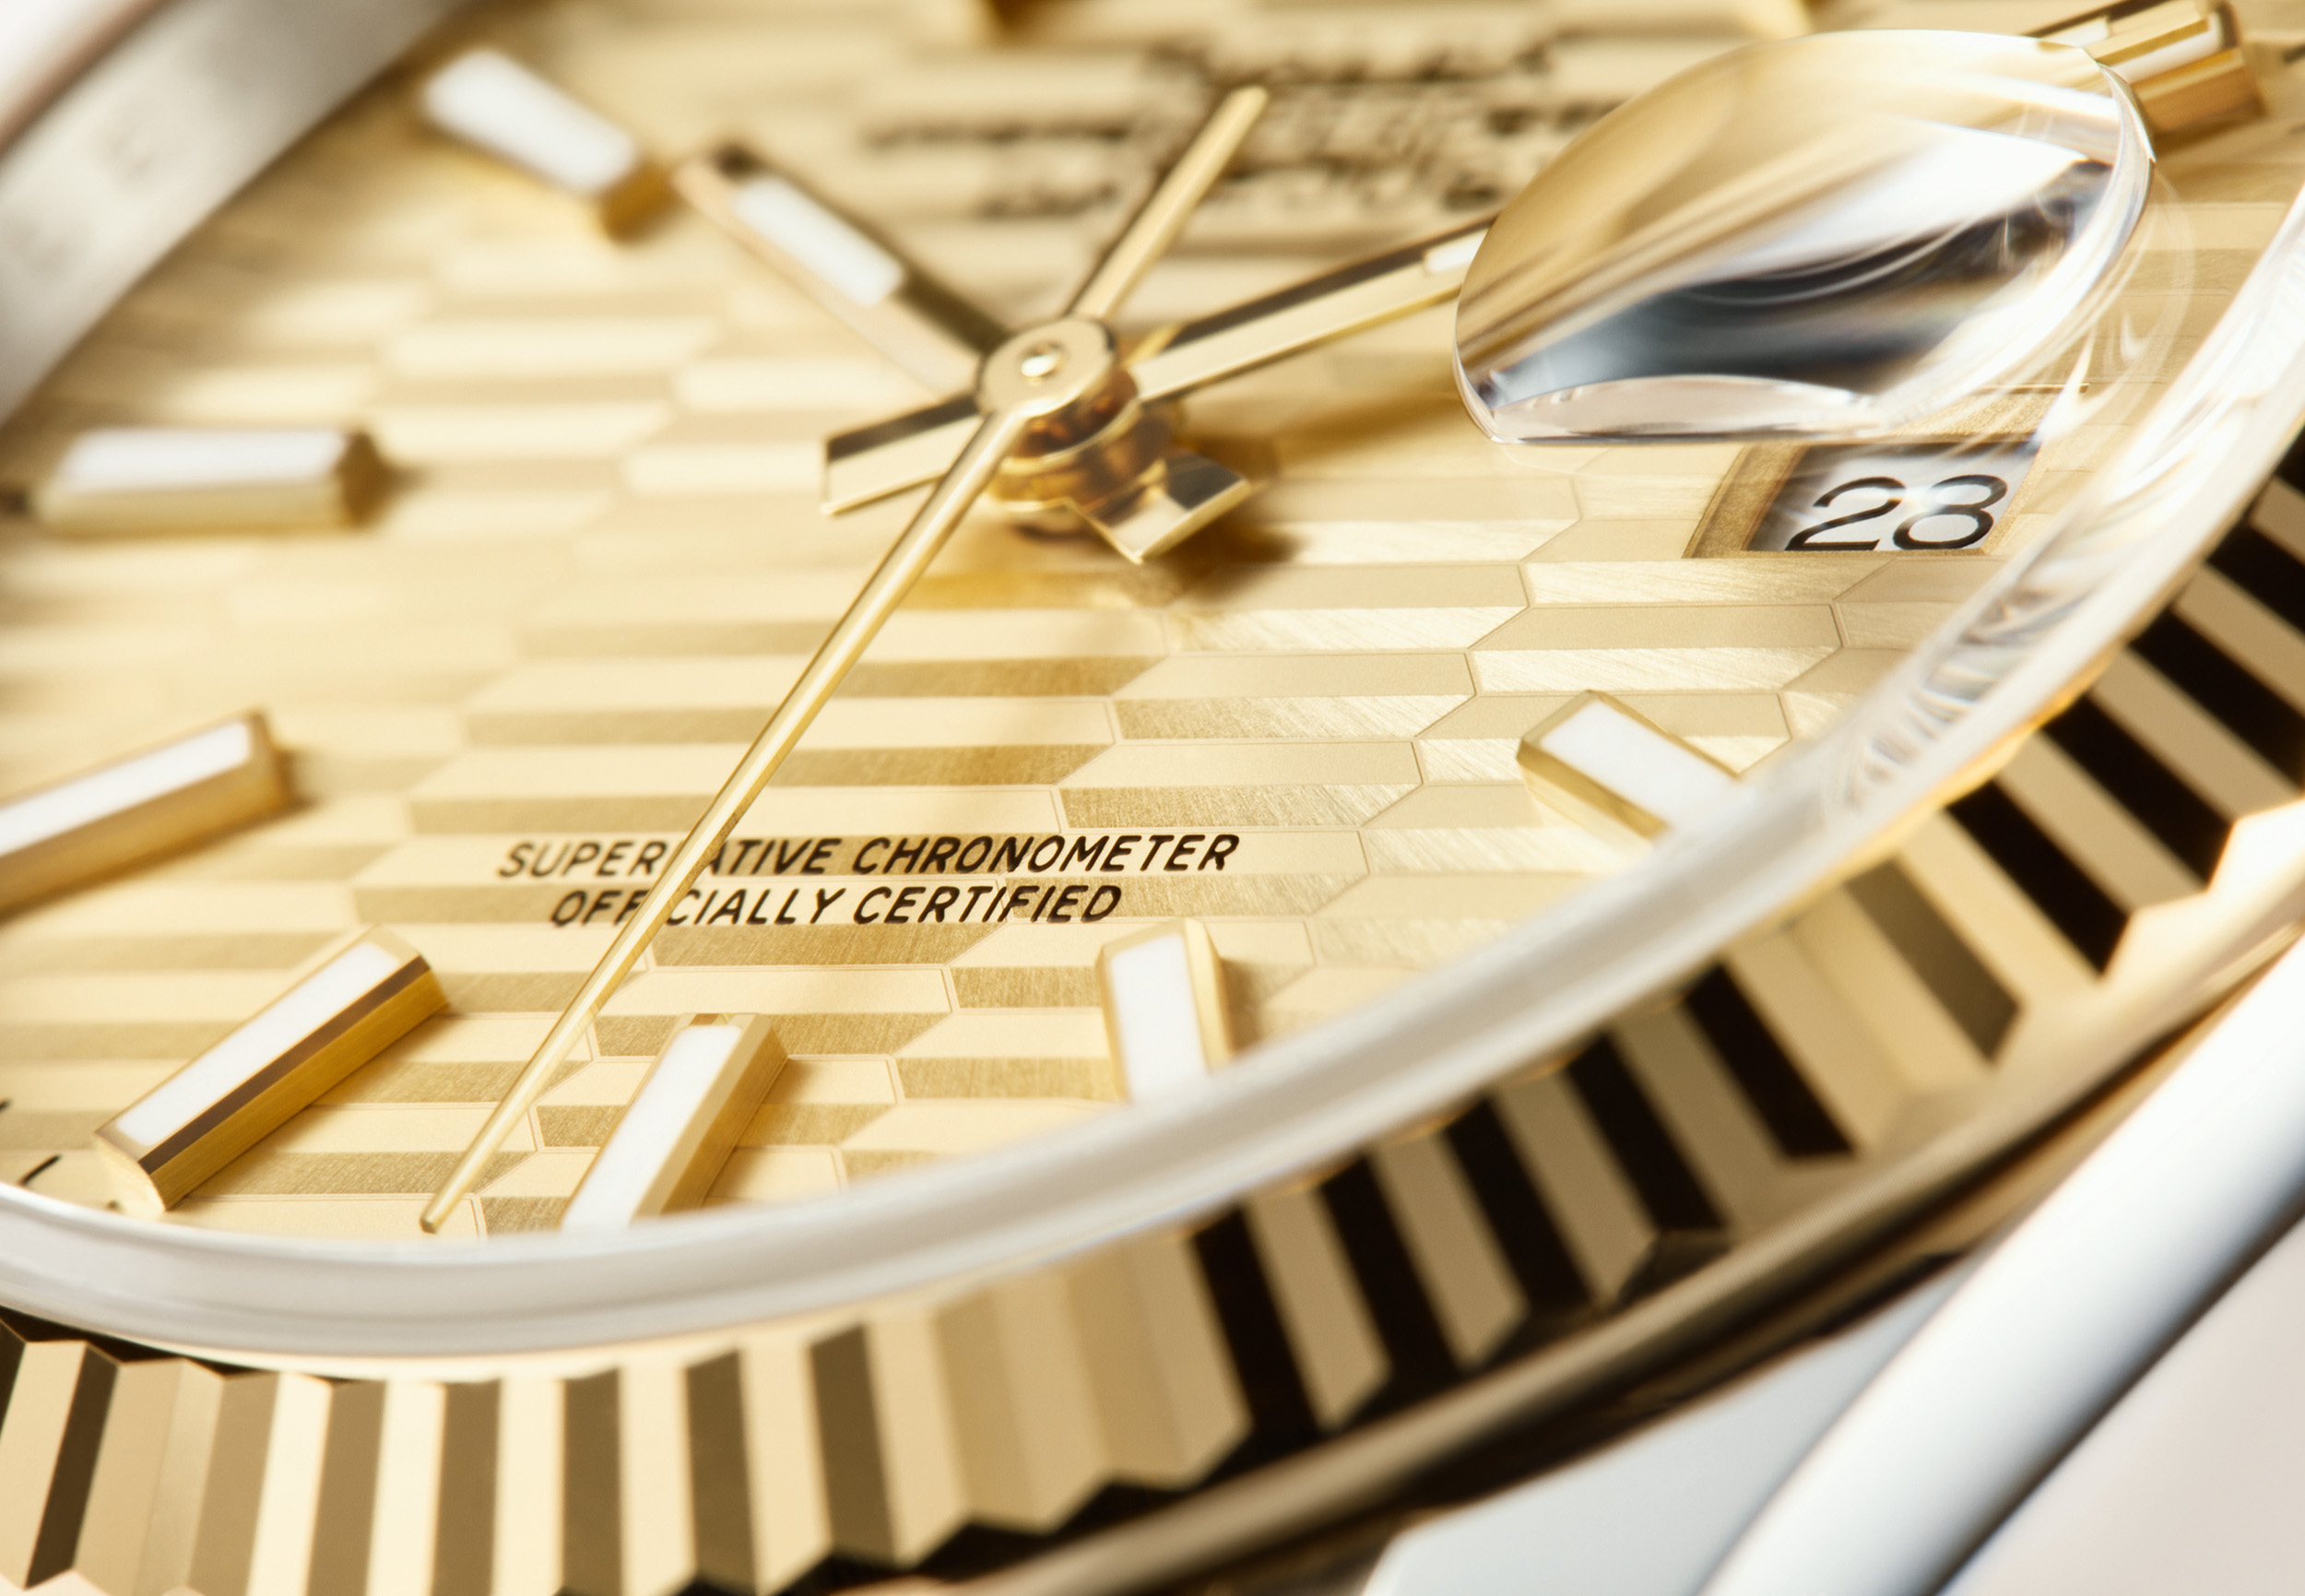 đồng hồ Oyster Perpetual Datejust 36 2